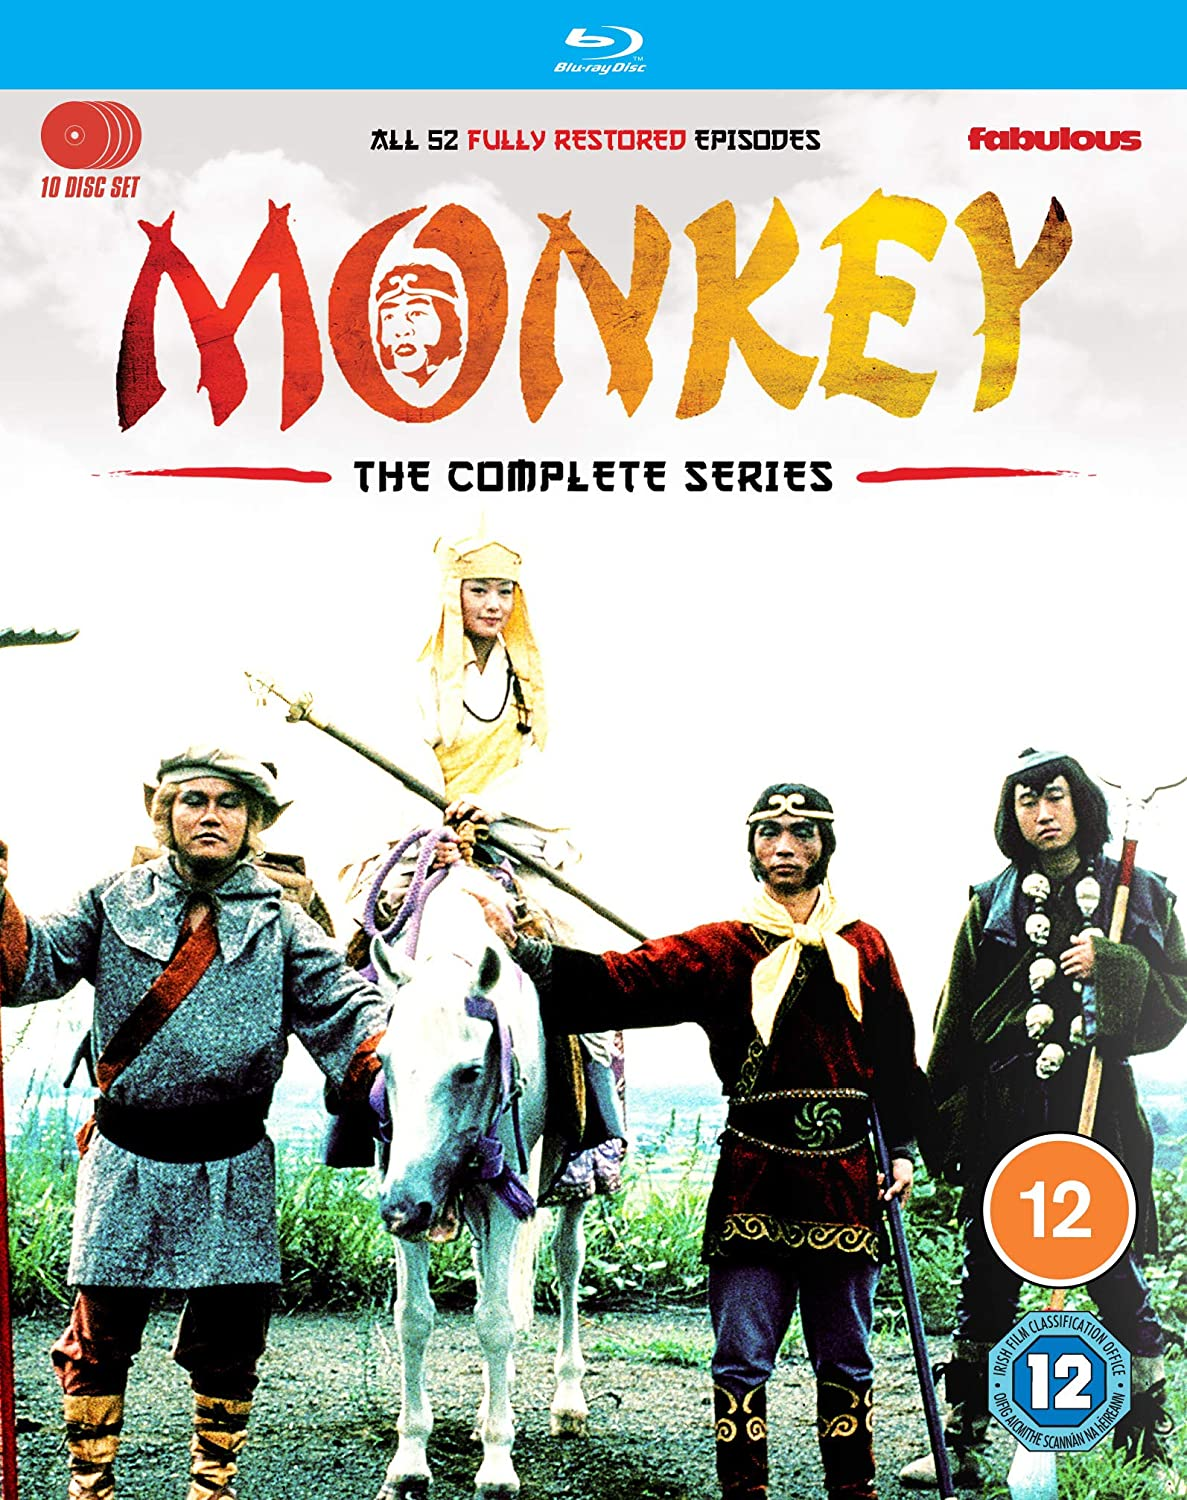 boom competitions -  win Monkey on Blu-ray